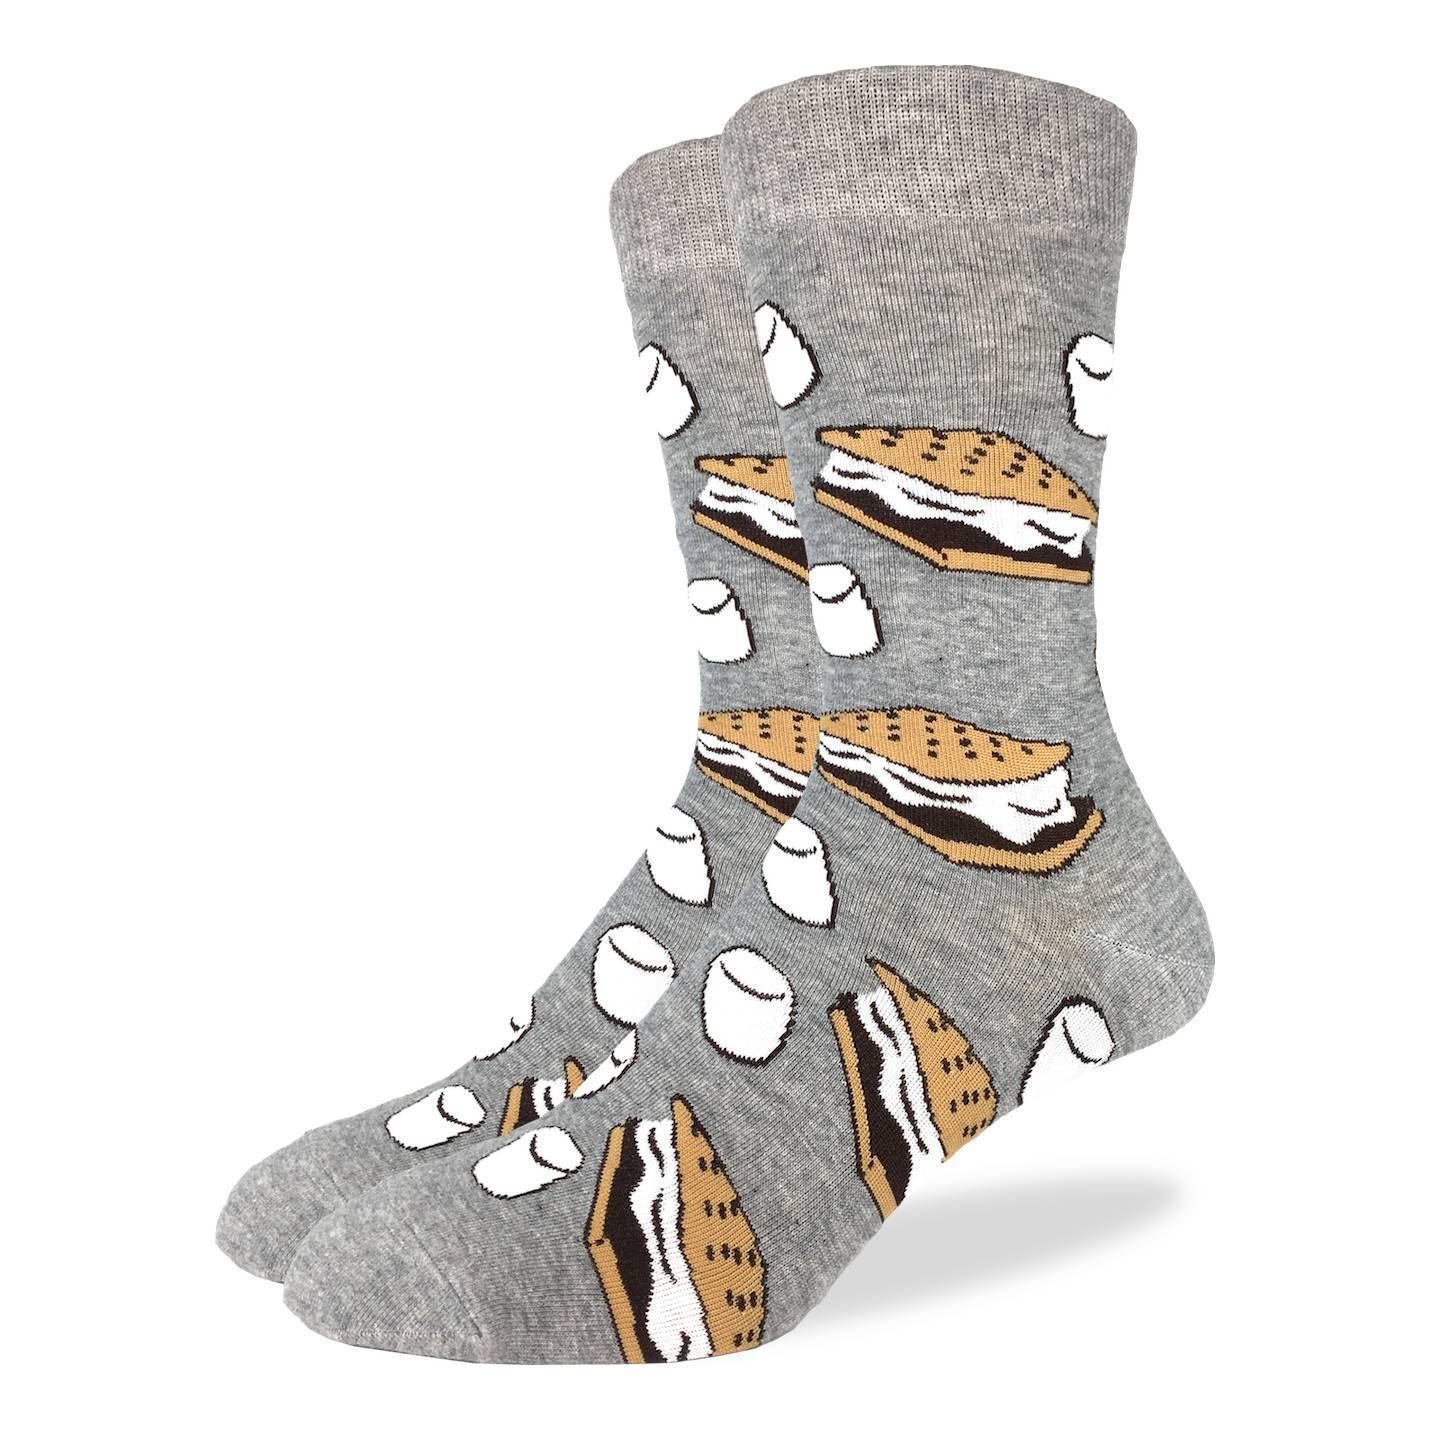 Men's Smores Socks - Good Luck Sock